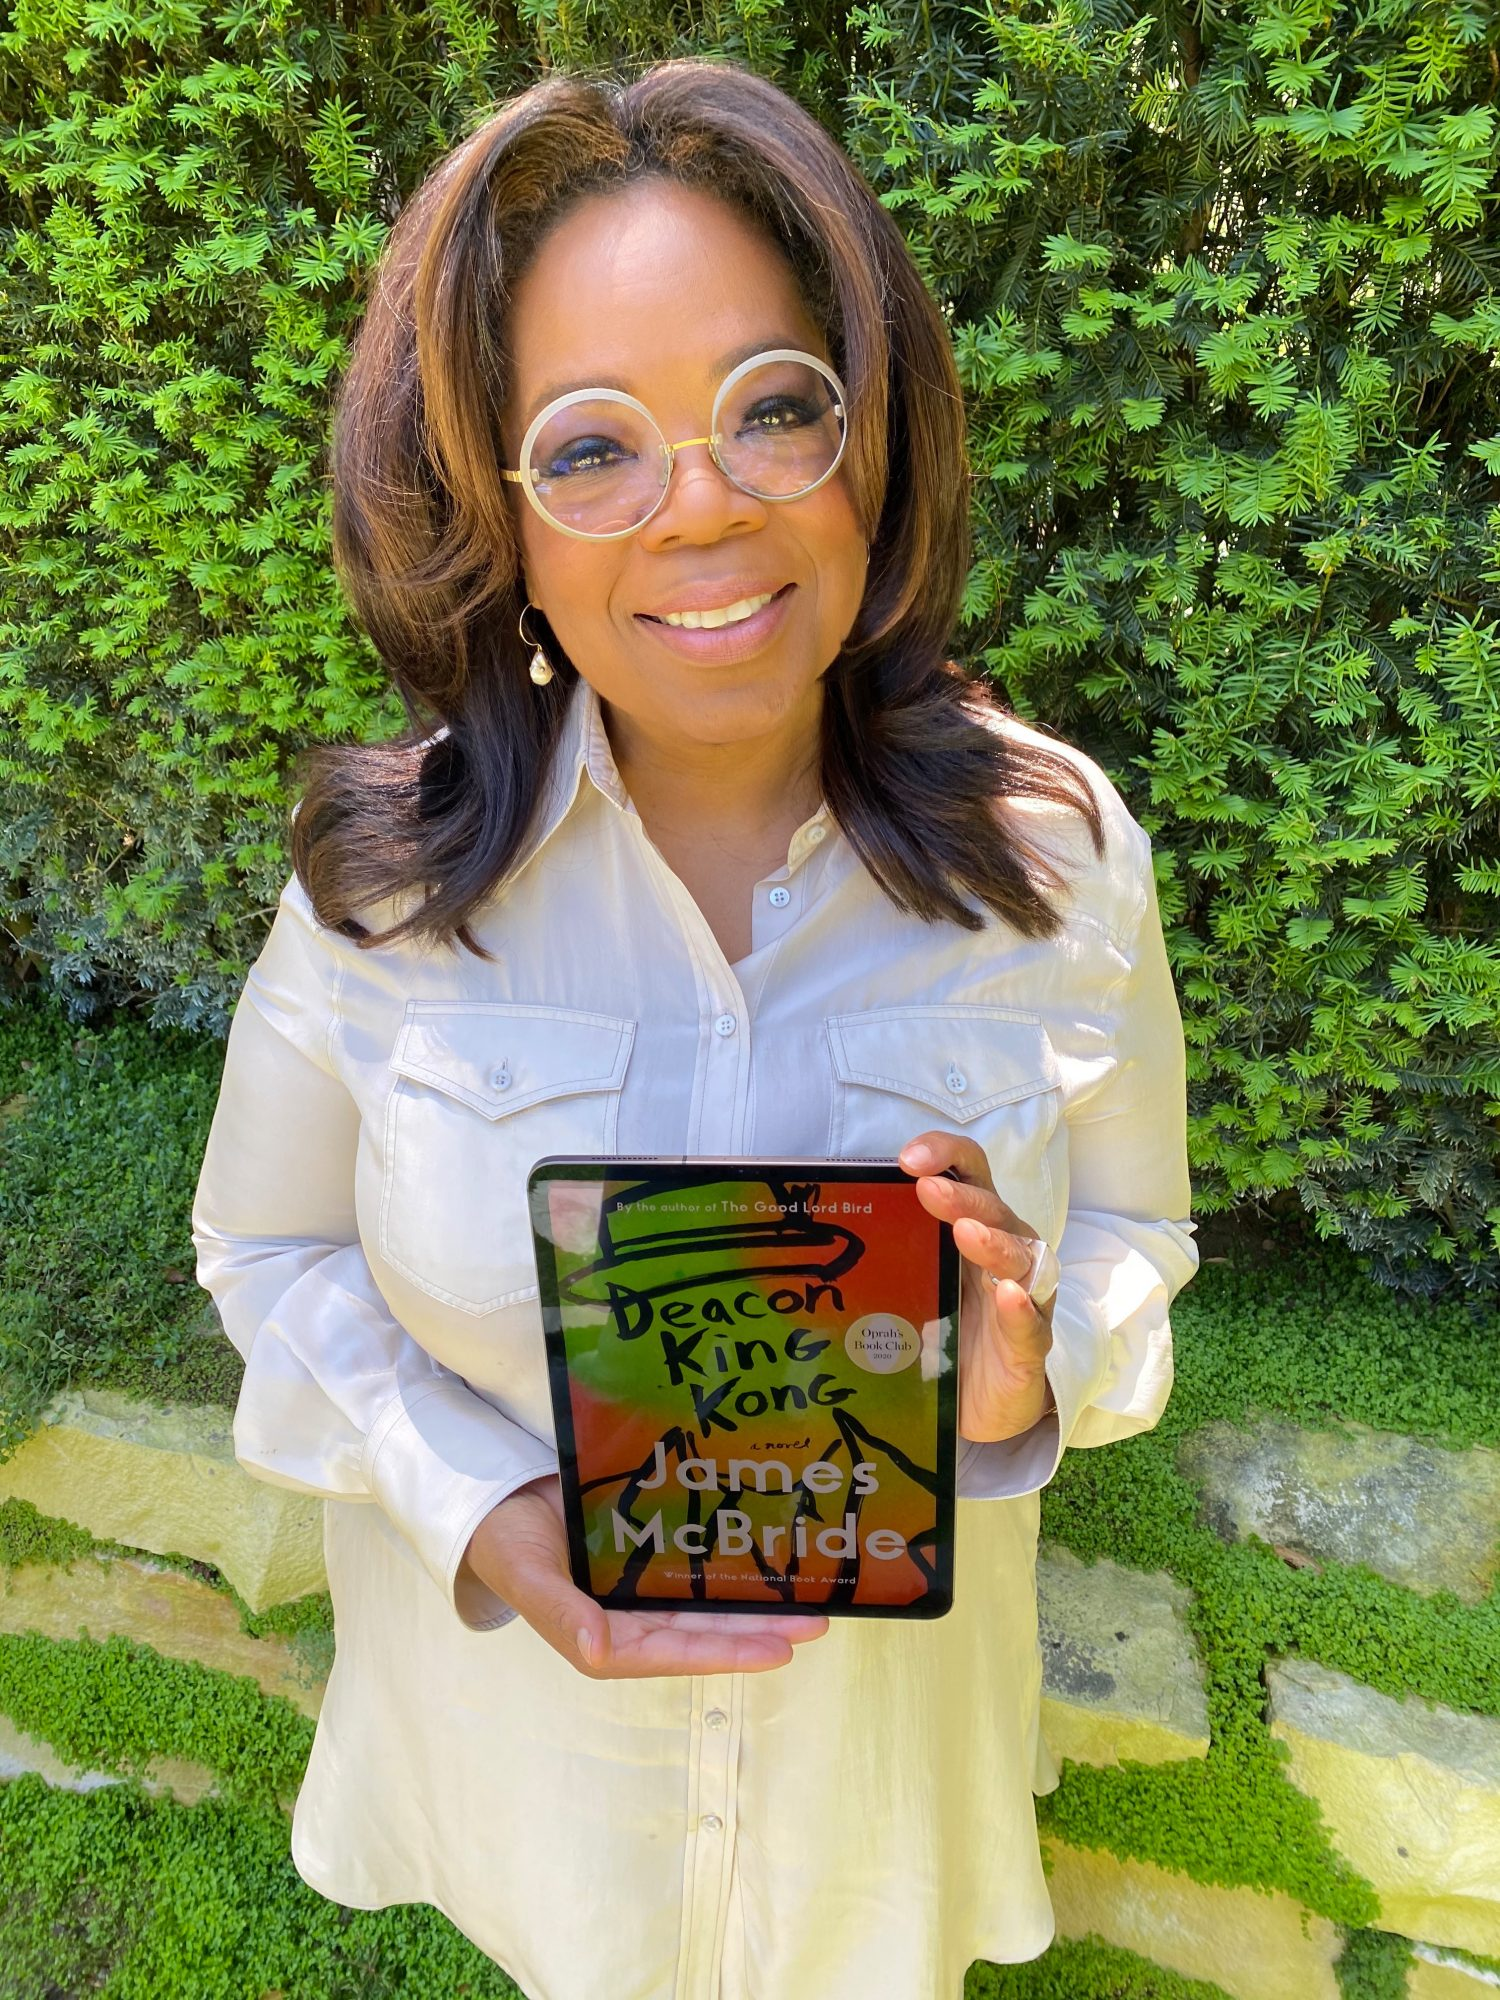 Oprah Winfrey Announces Deacon King Kong as Her Next Book Club Pick